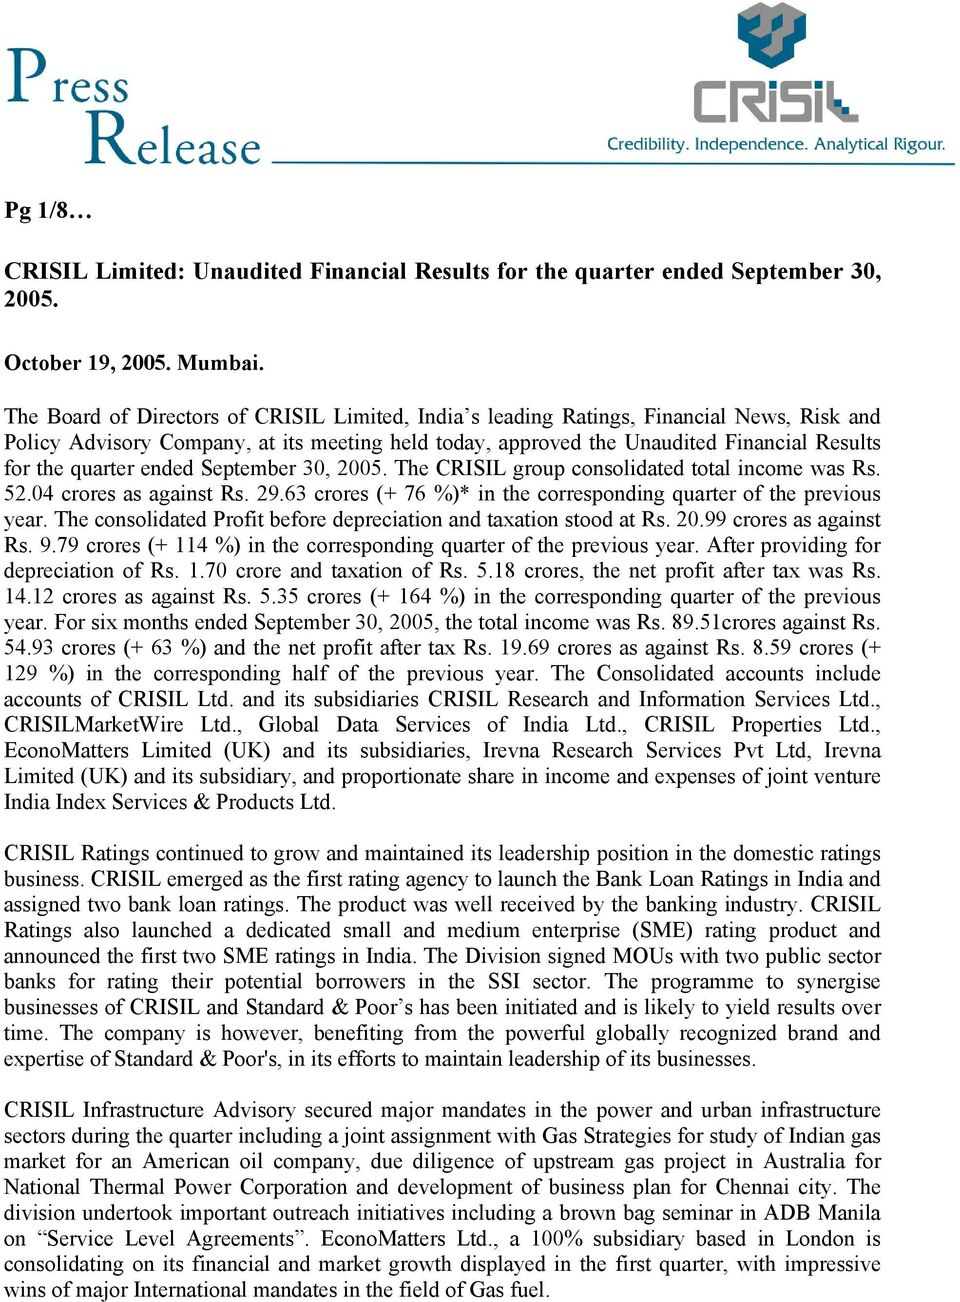 quarter ended September 30, 2005. The CRISIL group consolidated total income was Rs. 52.04 crores as against Rs. 29.63 crores (+ 76 %)* in the corresponding quarter of the previous year.